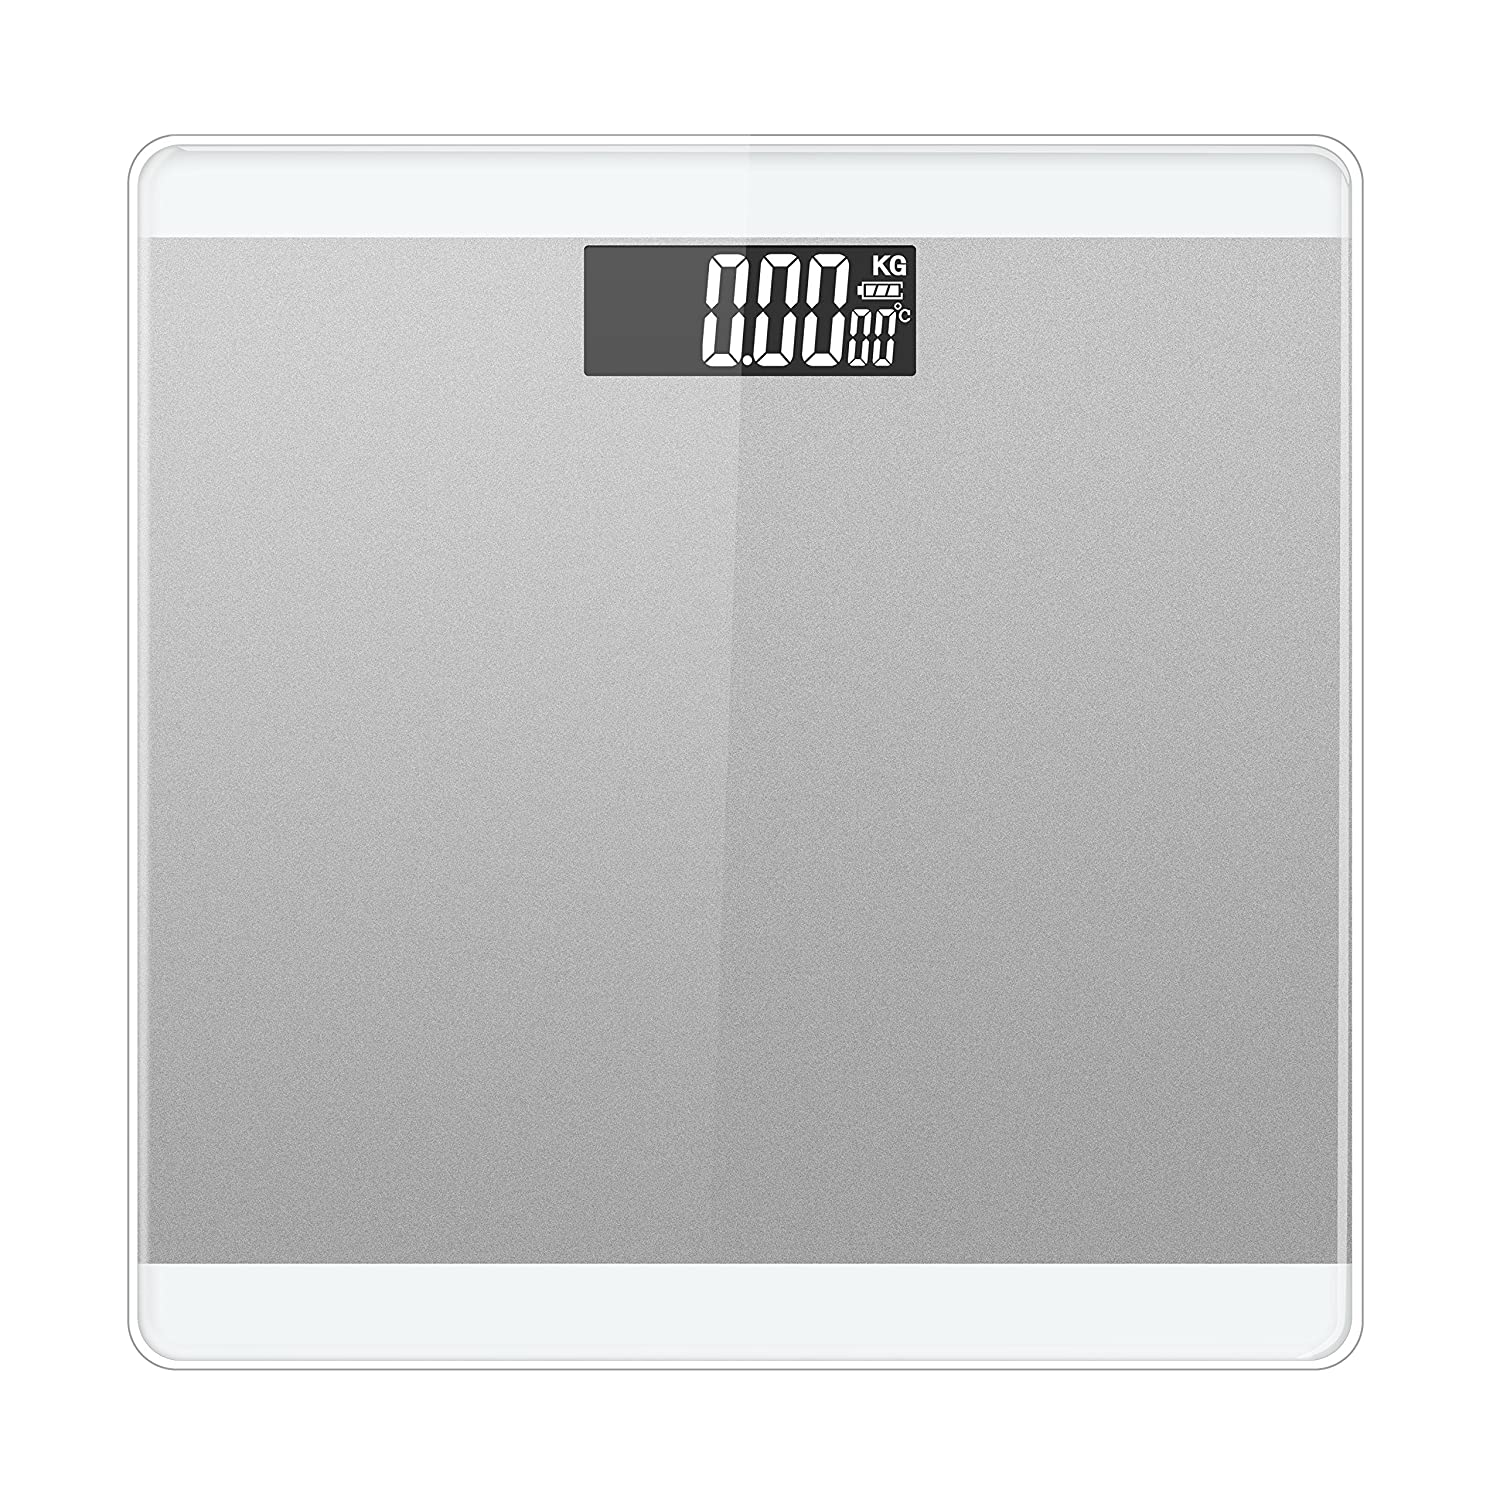 LUOYIMAN Body Weight Scale Digital Electronic Bathroom Scale